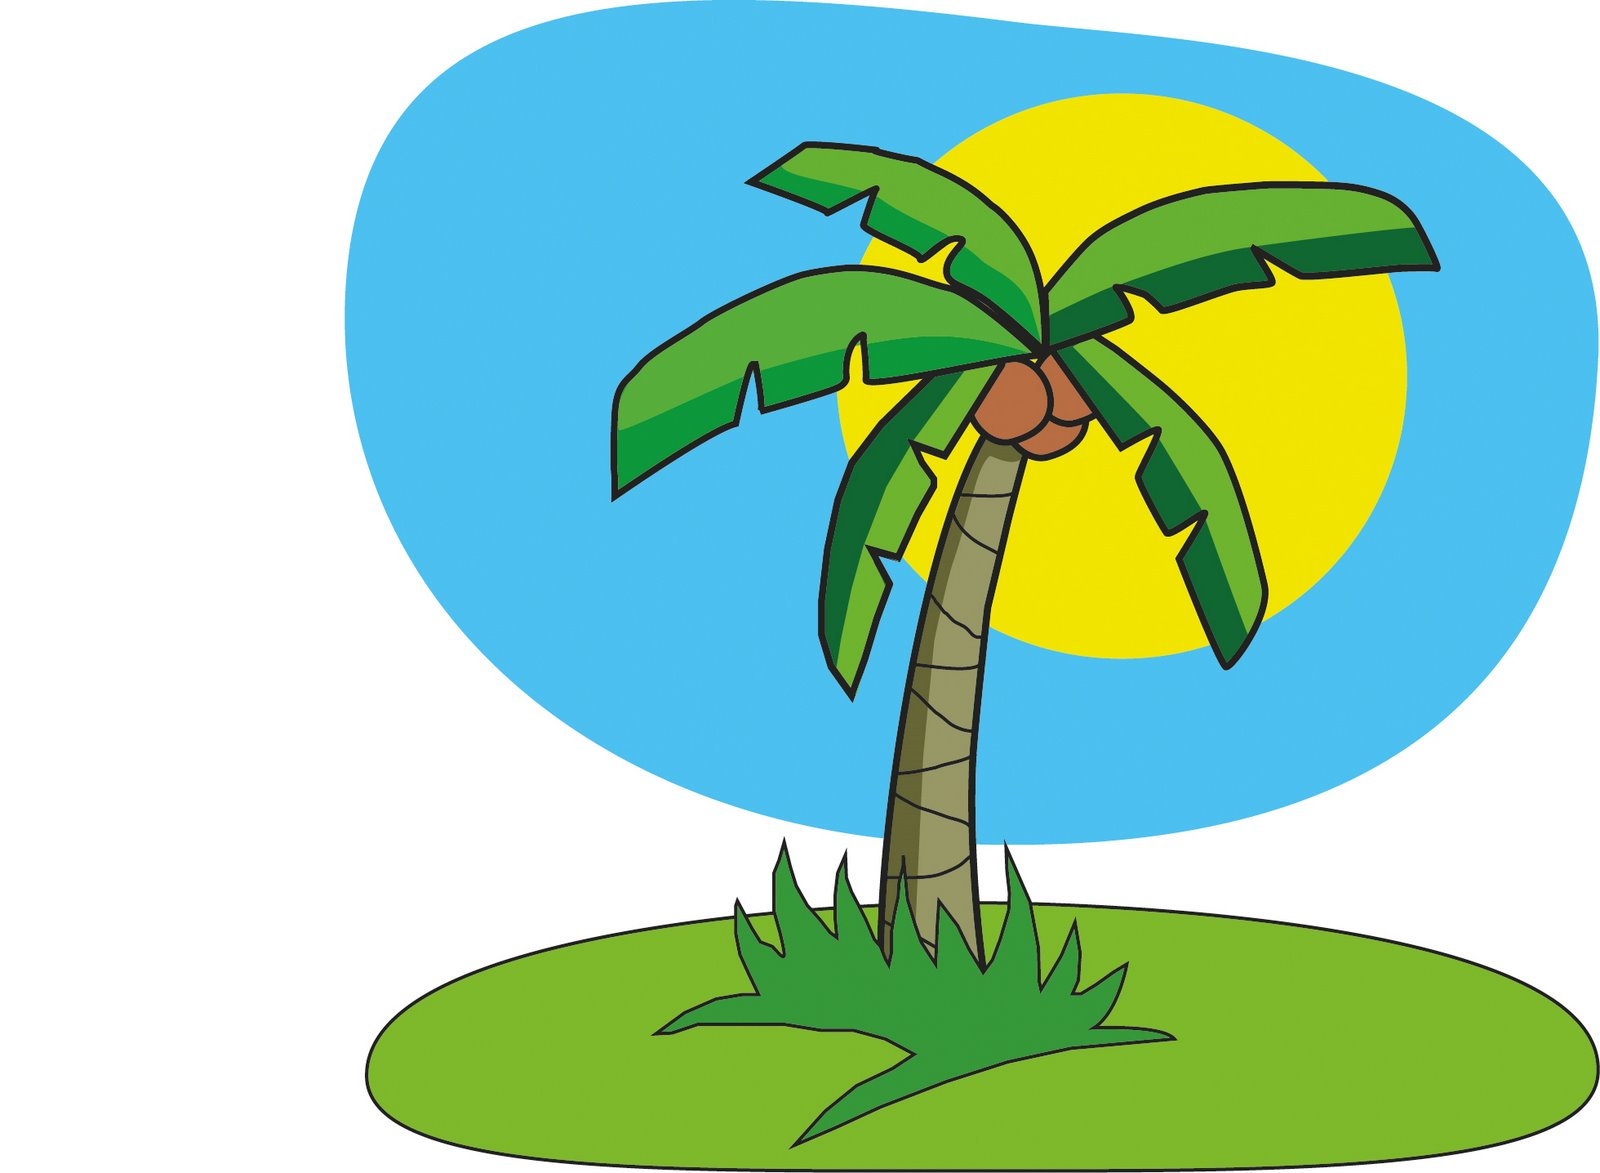 10 Coconut Tree Cartoon Free Cliparts Th-10 Coconut Tree Cartoon Free Cliparts That You Can Download To You-0